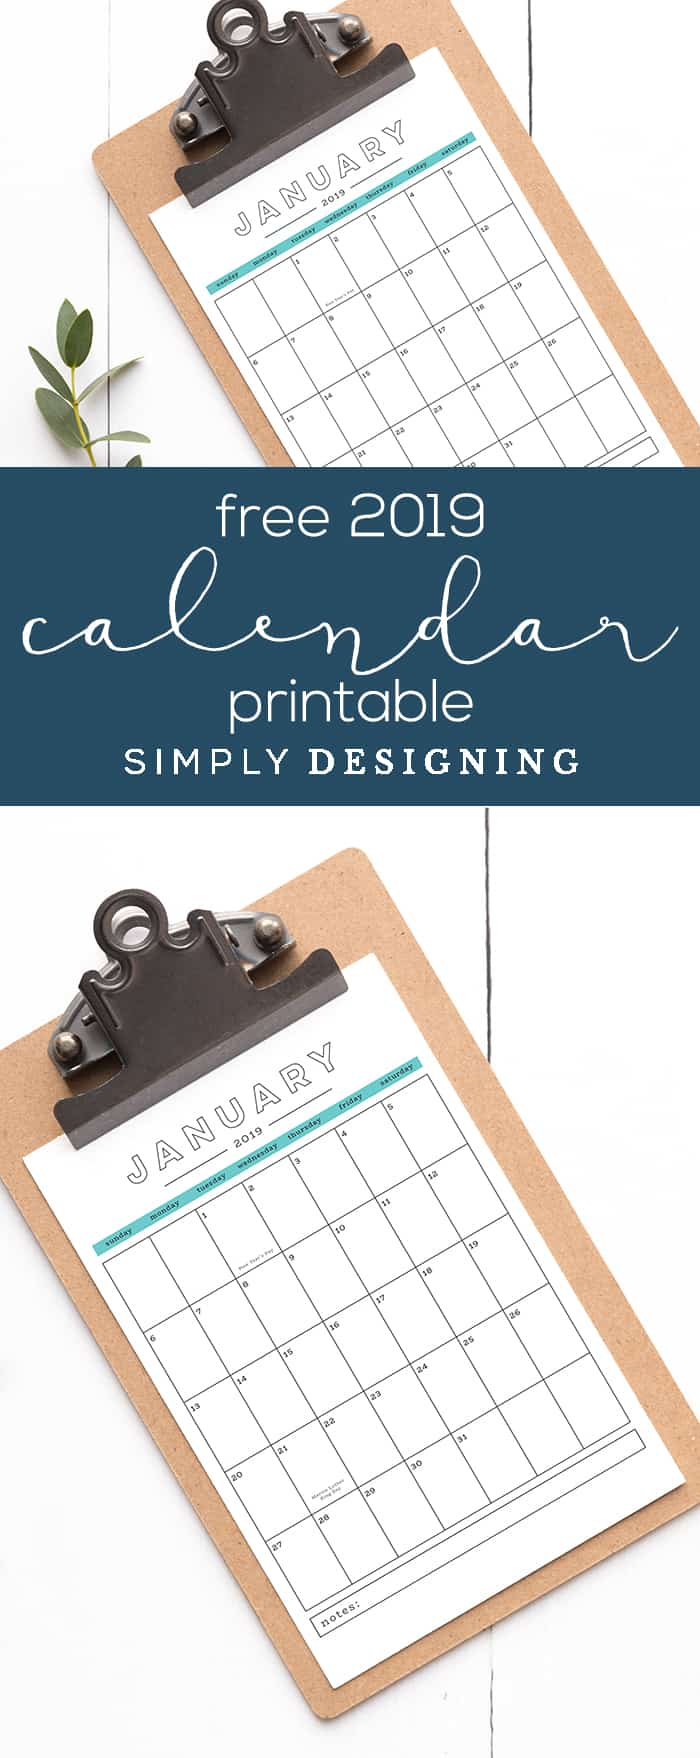 This free 2019 printable calendar is beautiful and functional and is yours to use for FREE